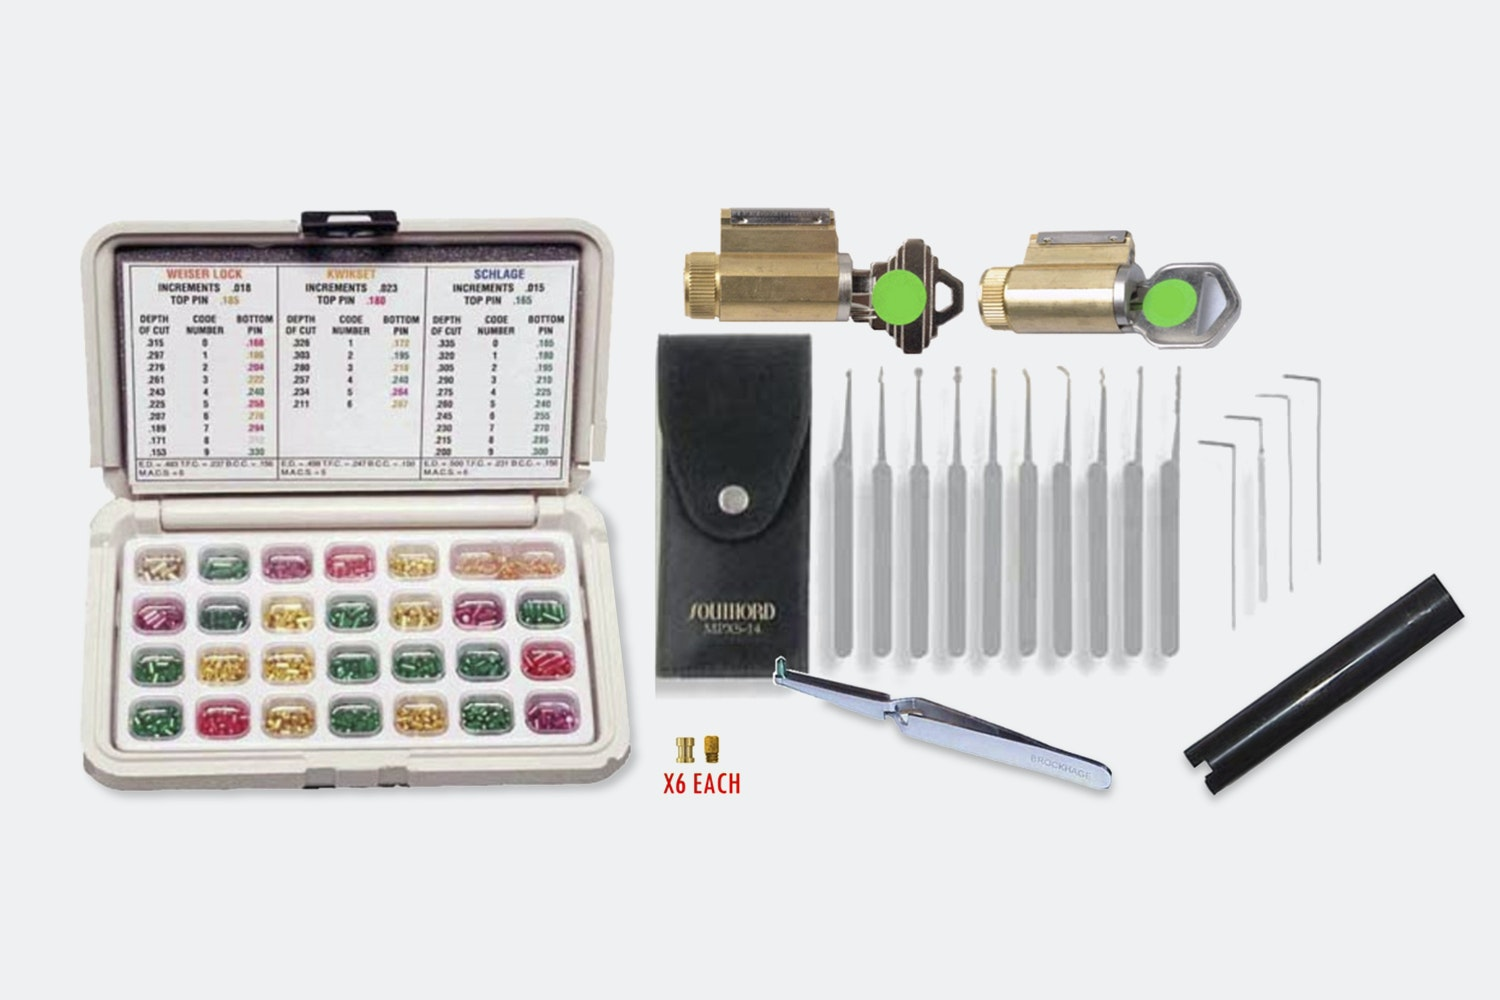 Master Class Self-Training Rekeying Kit